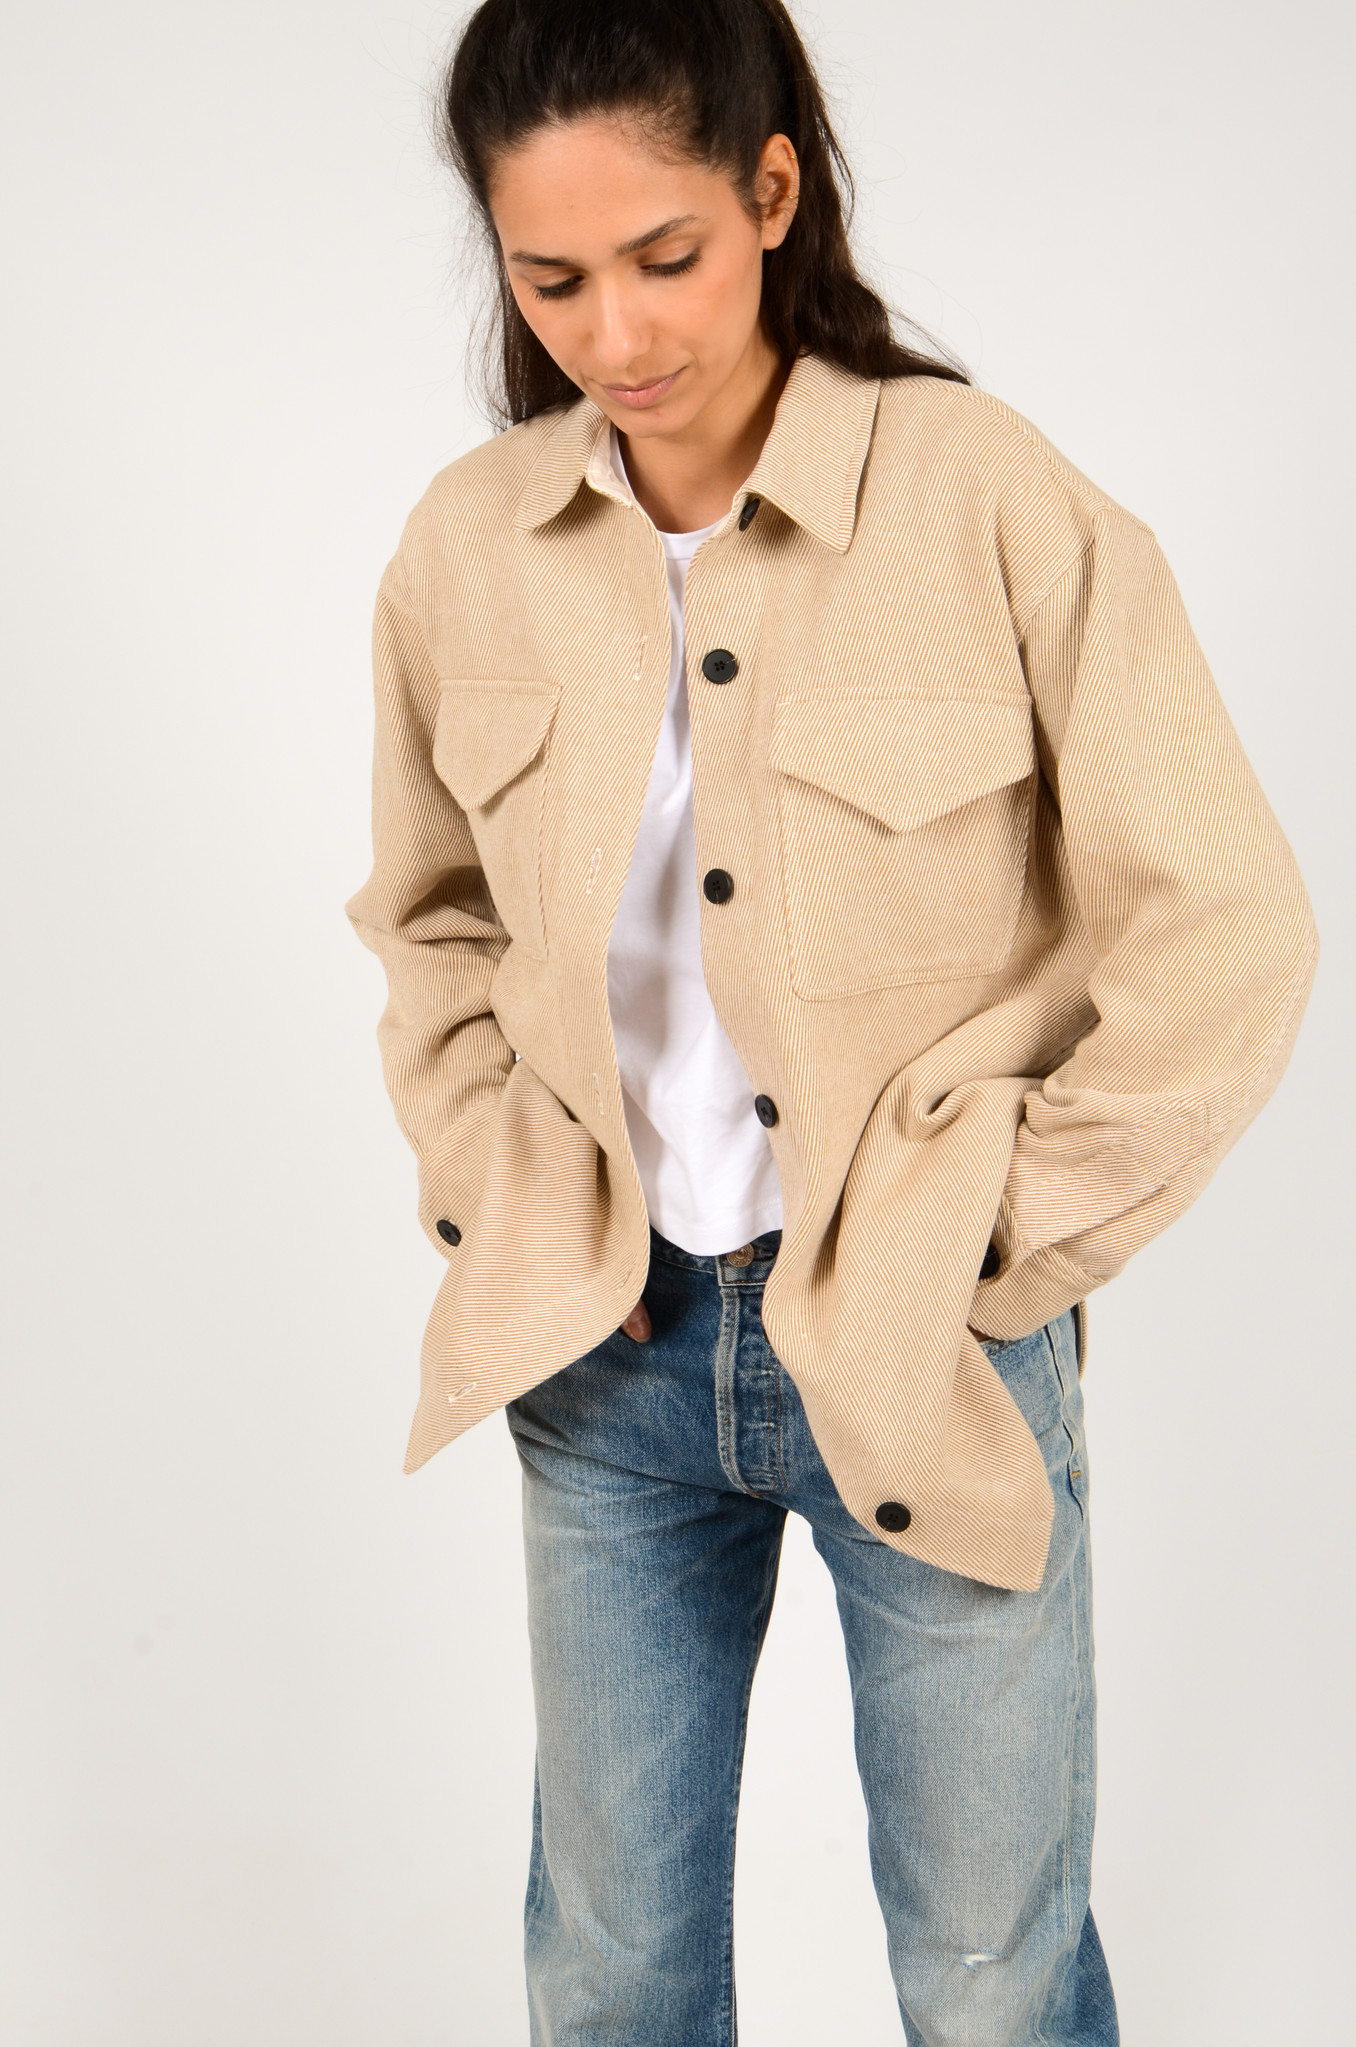 PALERMO SHIRT COAT IN CAMEL-2